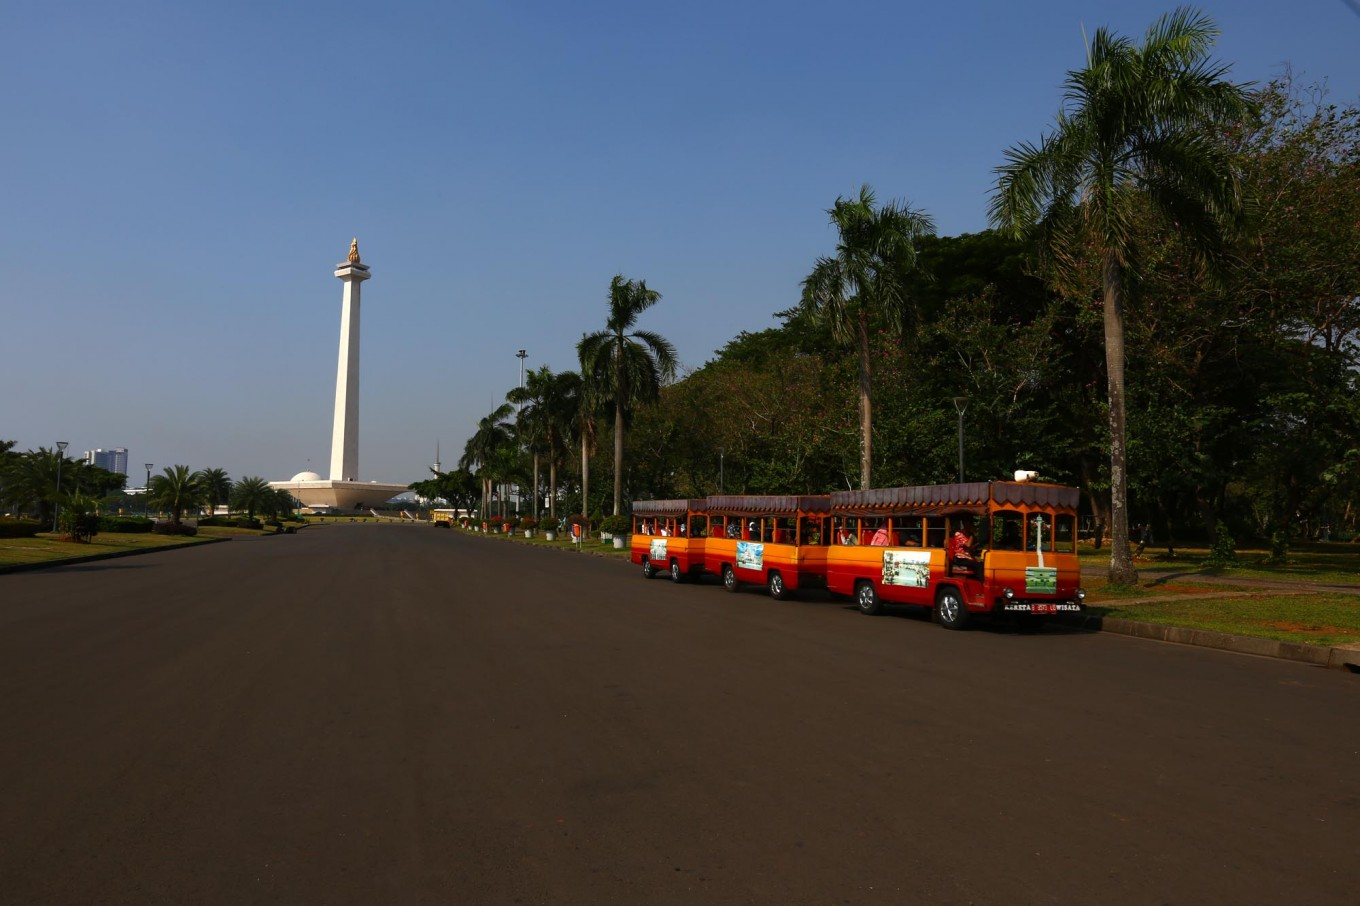 Jakpost guide to Monas area